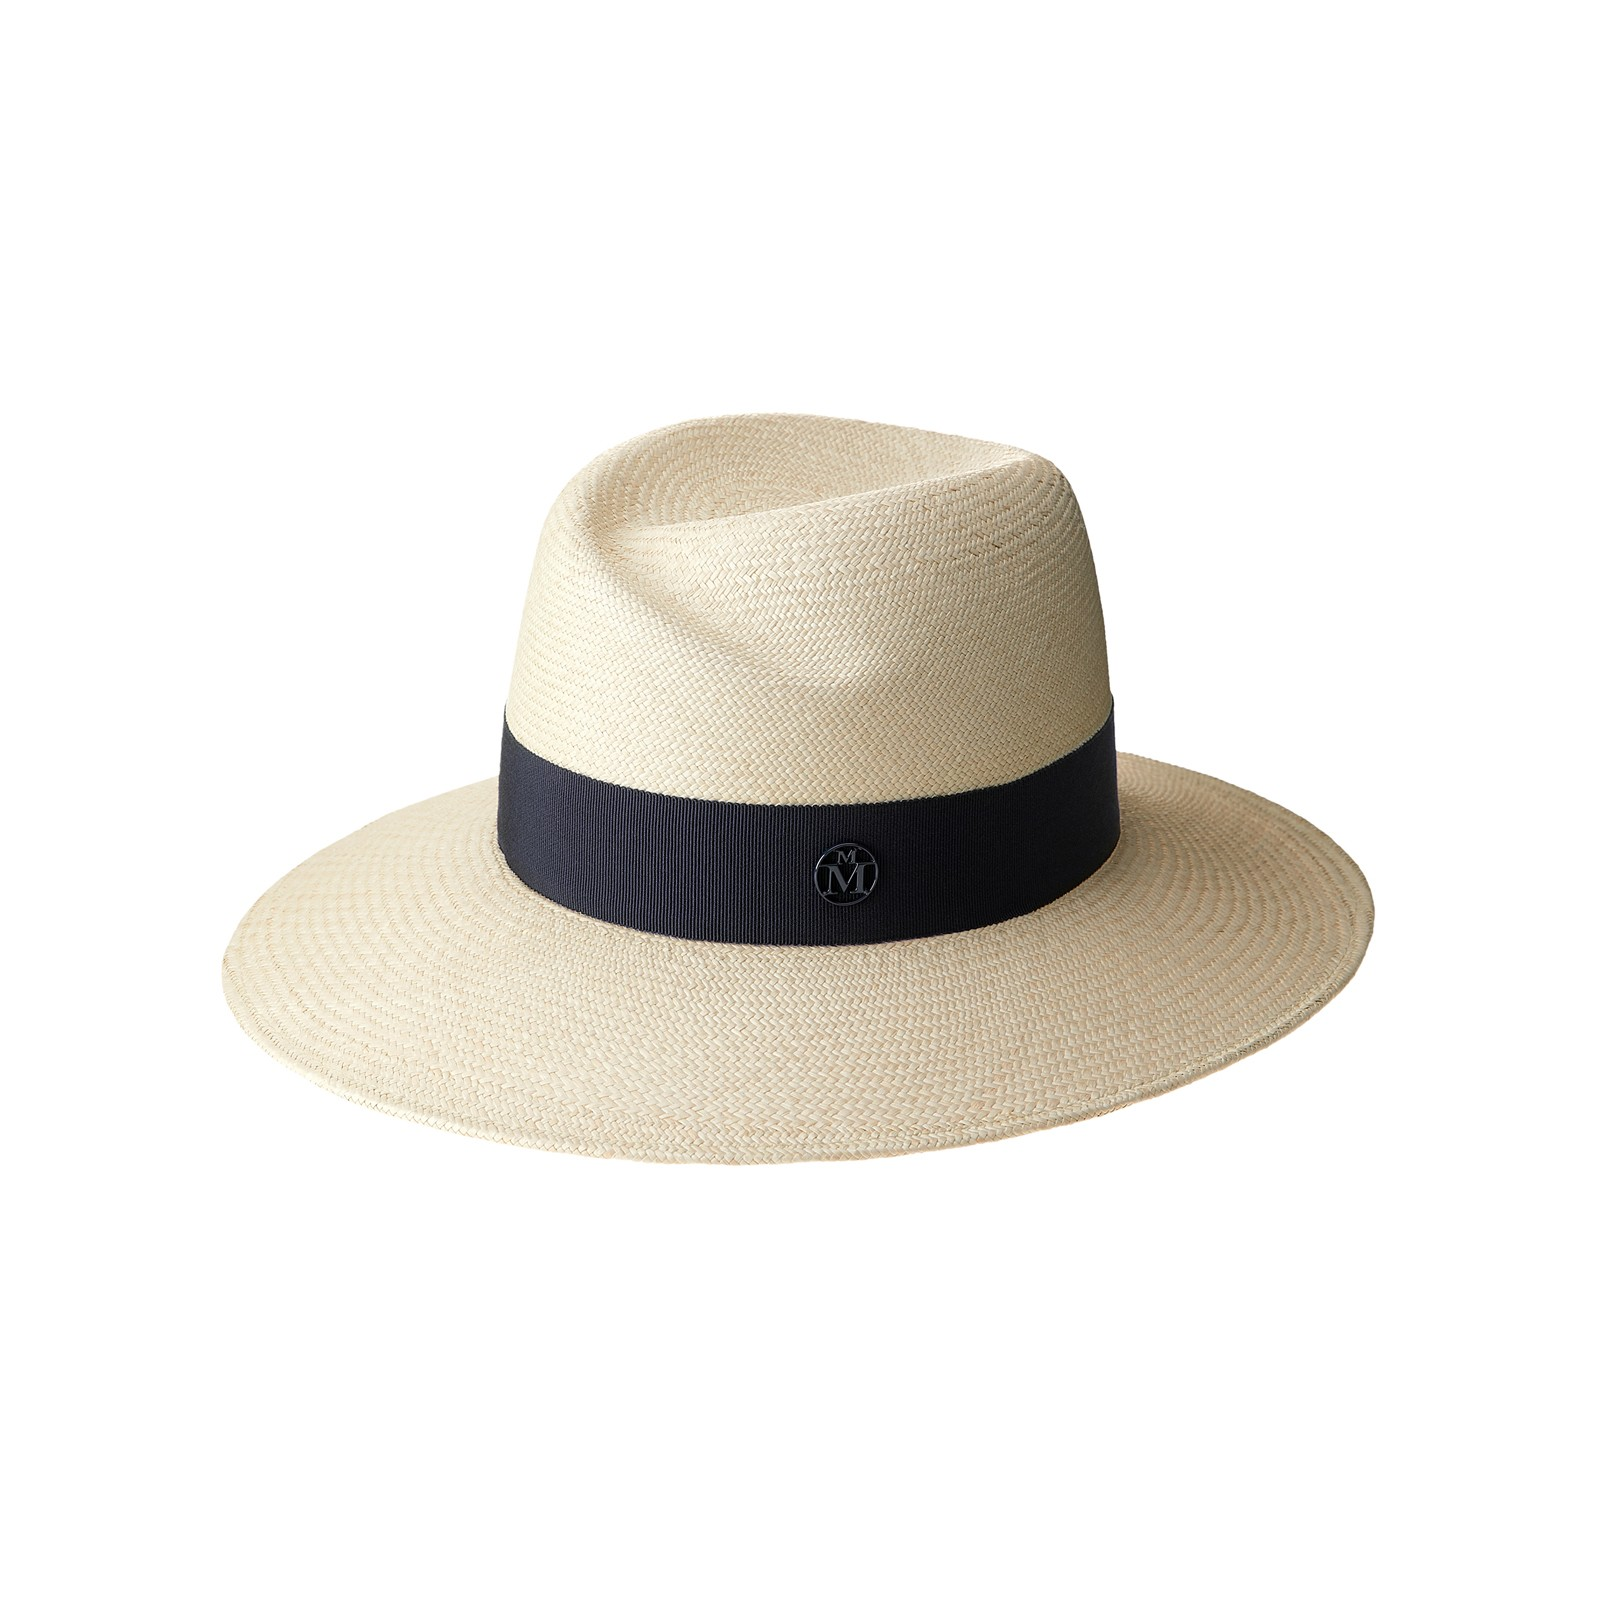 Panama straw fedora hat with navy grosgrain ribbon